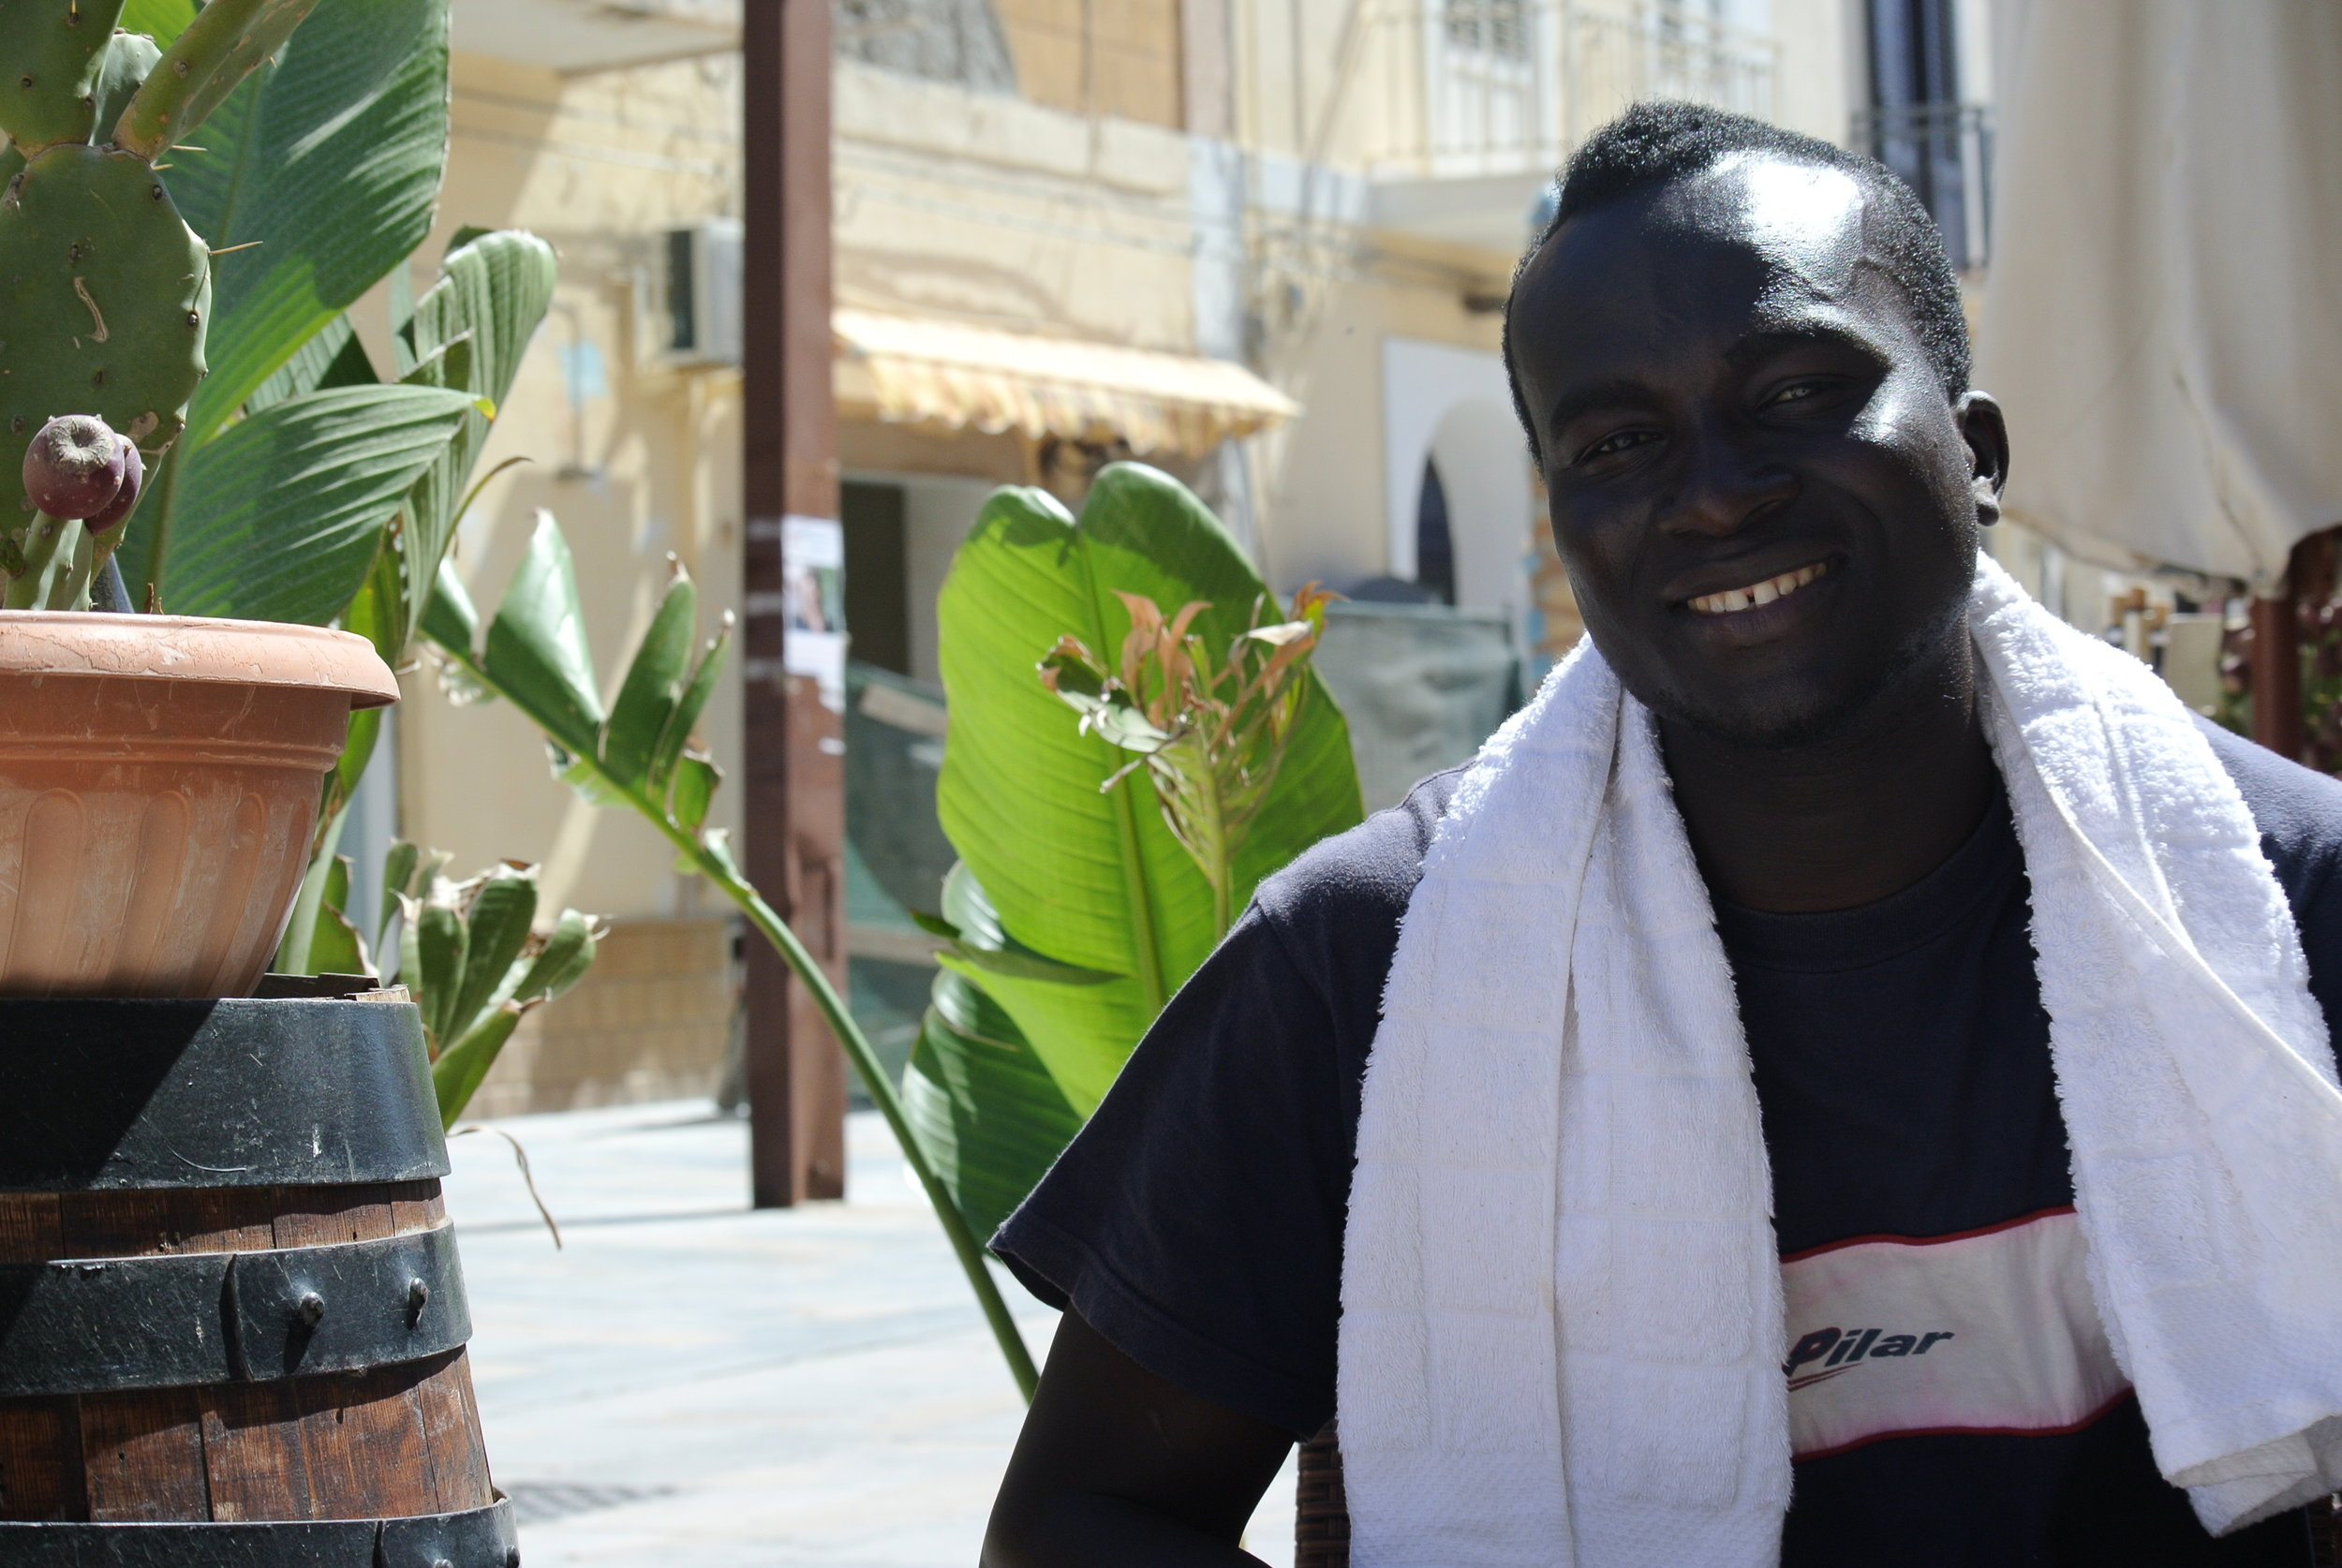 David (Bakary David) on Lampedusa island after his rescue on the Mediterranean. Lampedusa, Italy; May 2017.  © Pamela Kerpius